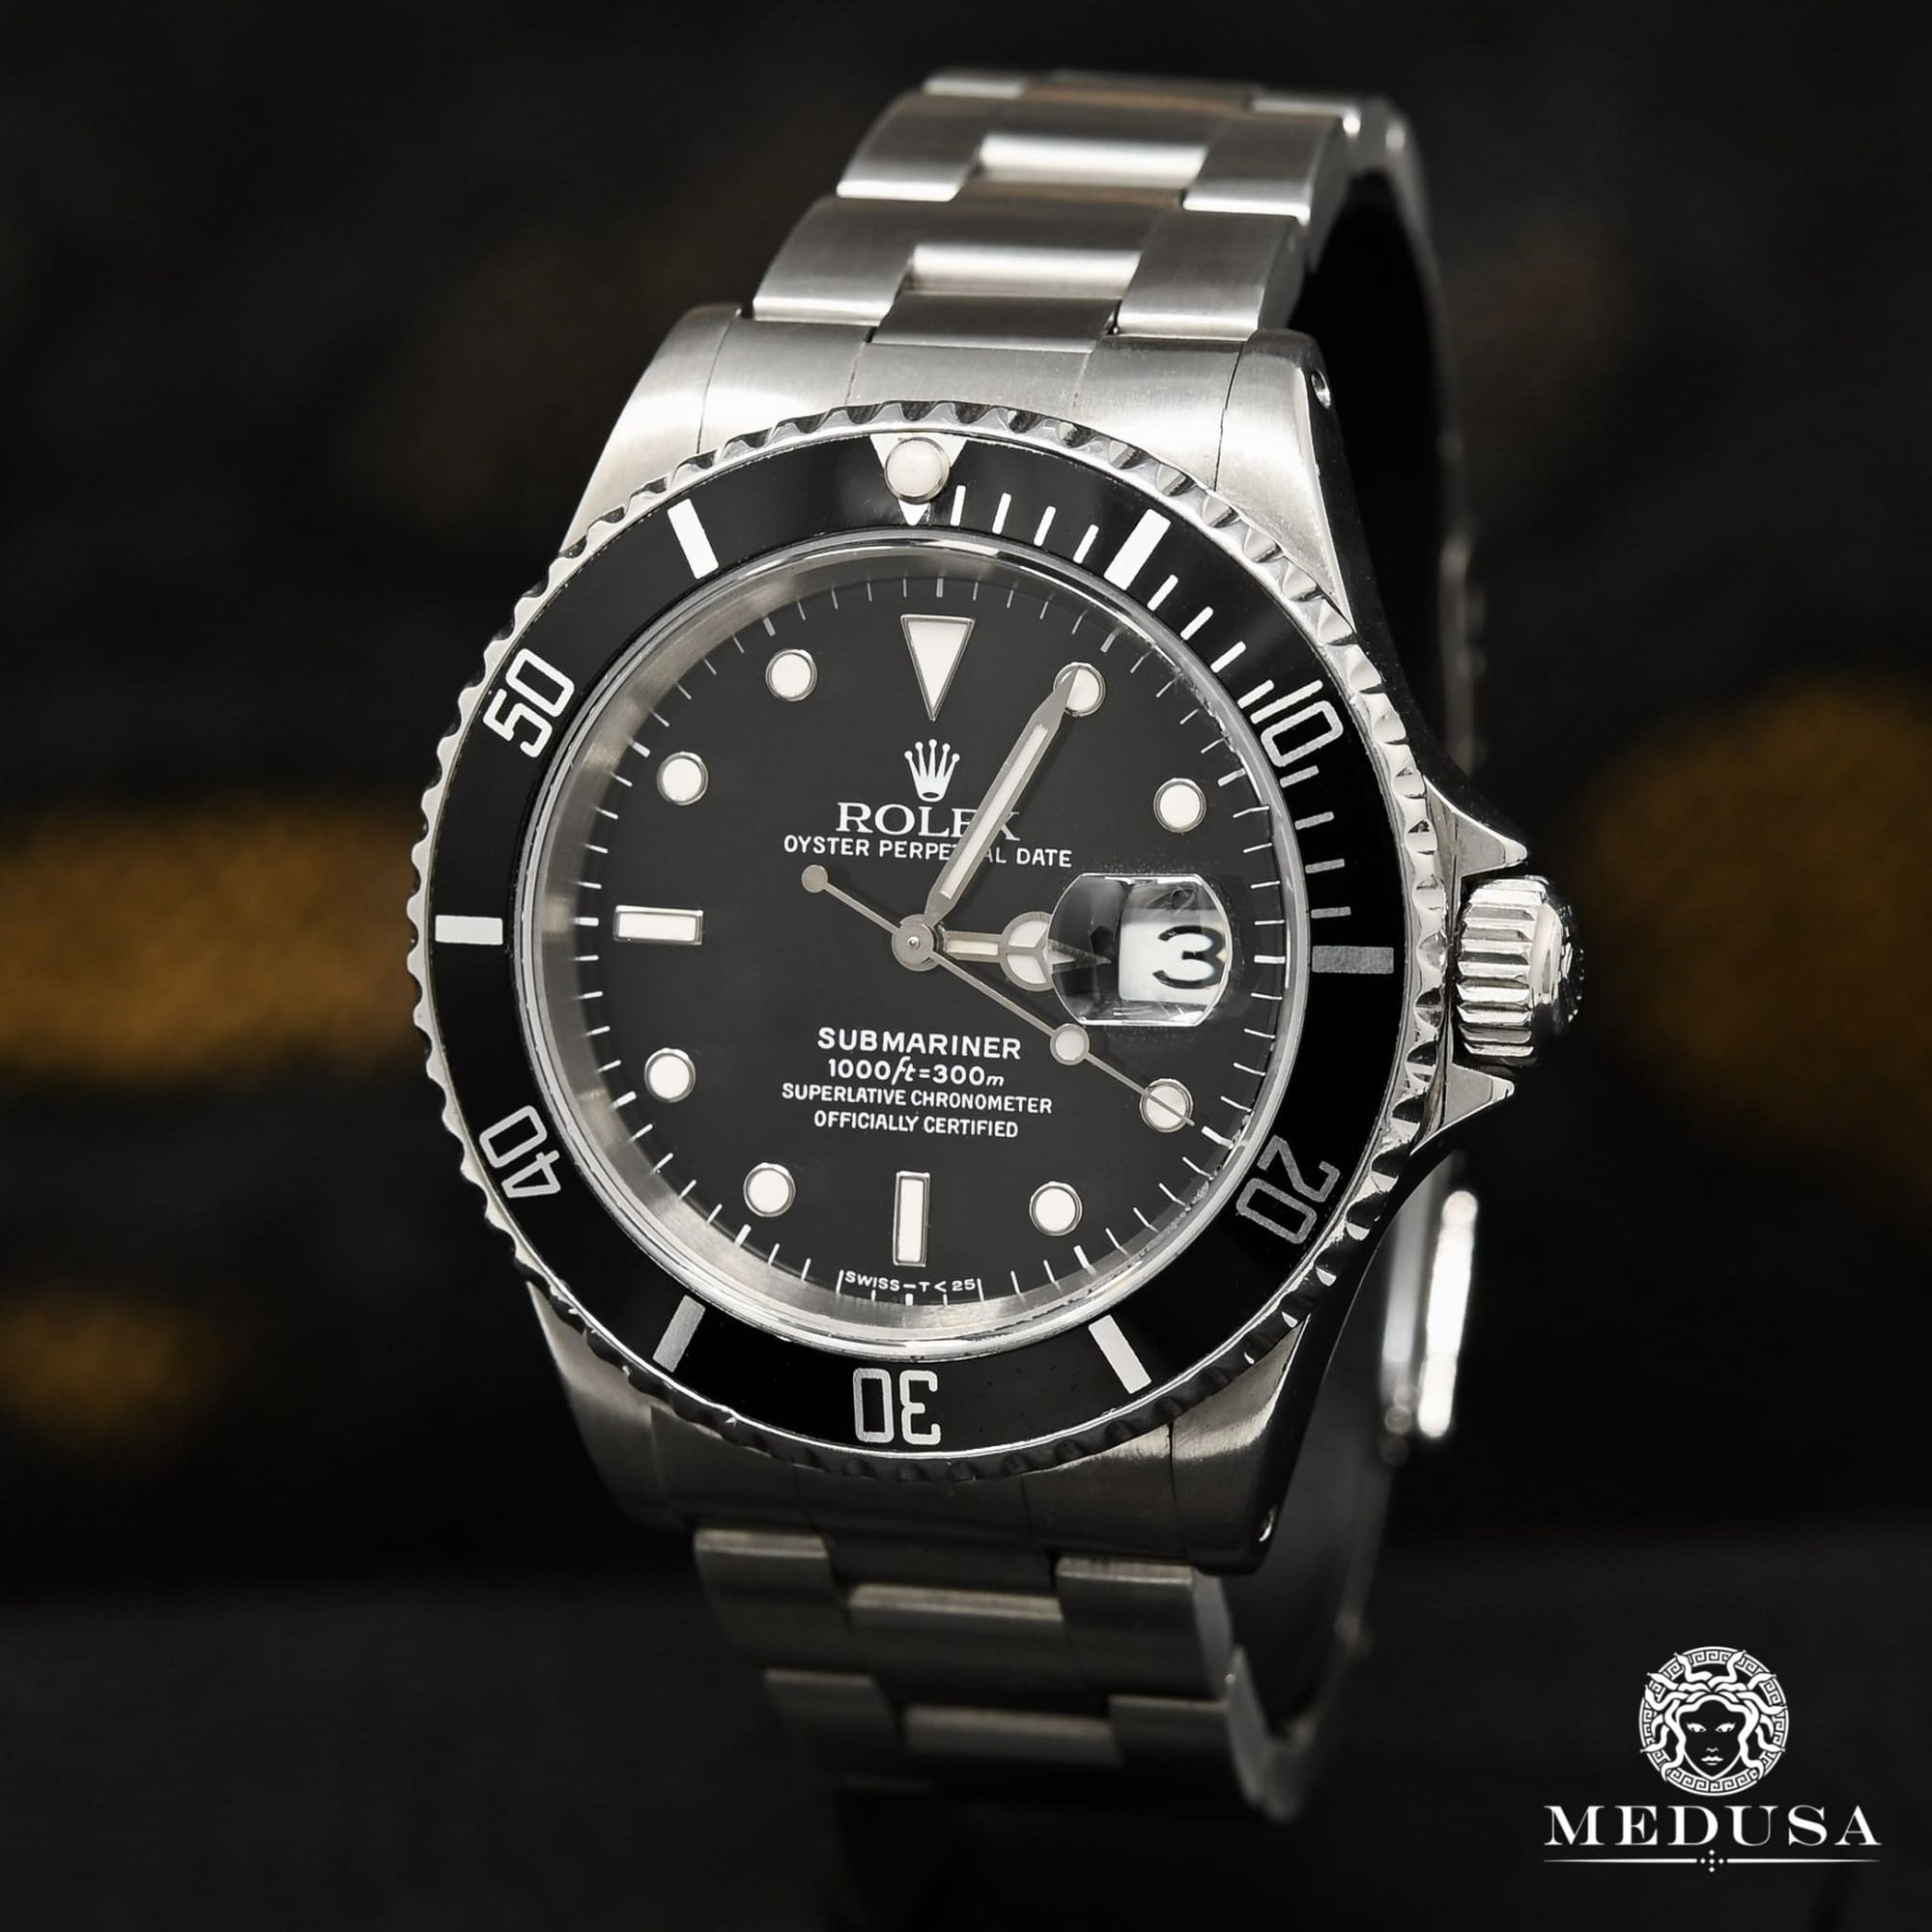 Montre Rolex | Montre Homme Rolex Submariner 40mm - Black Stainless